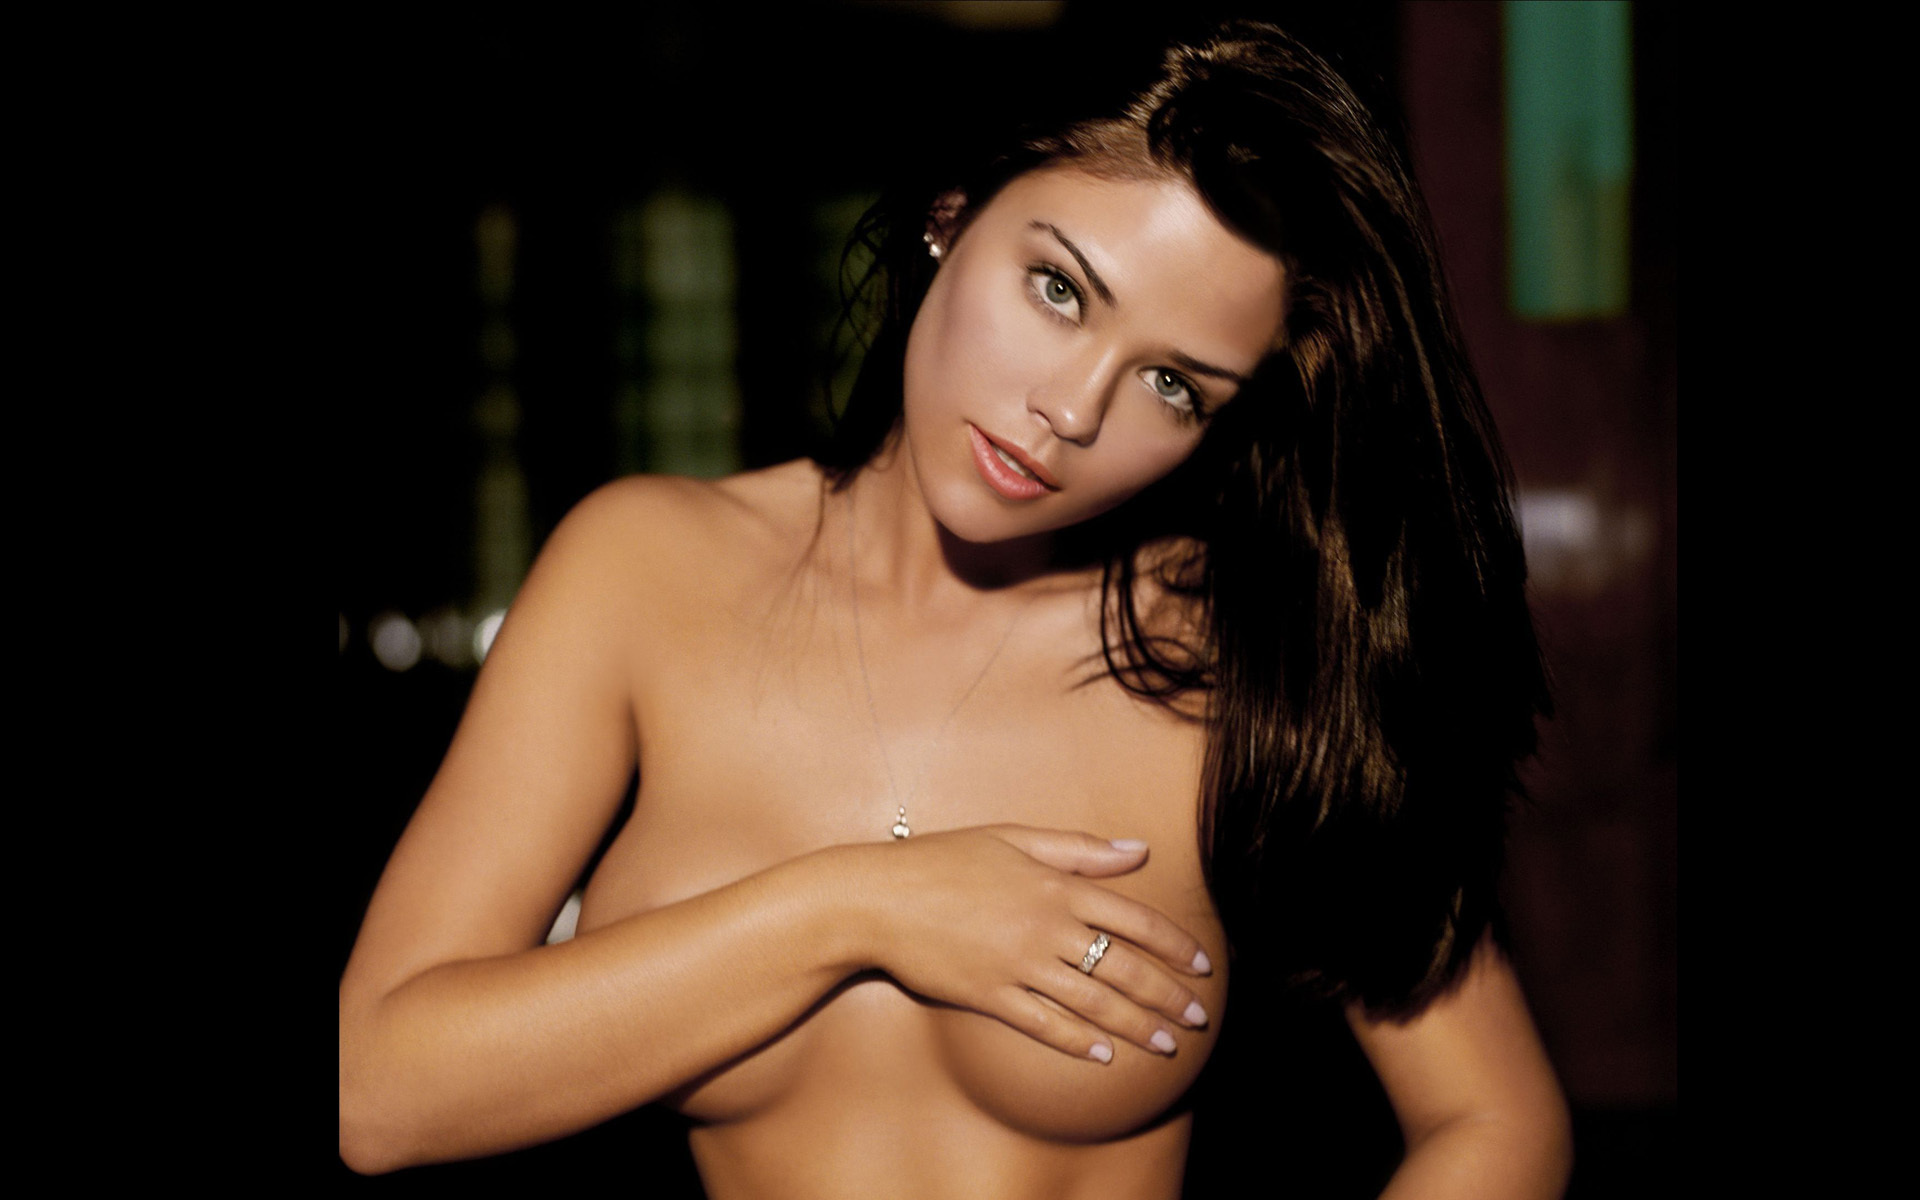 Susan ward nude boobs in the in crowd picture